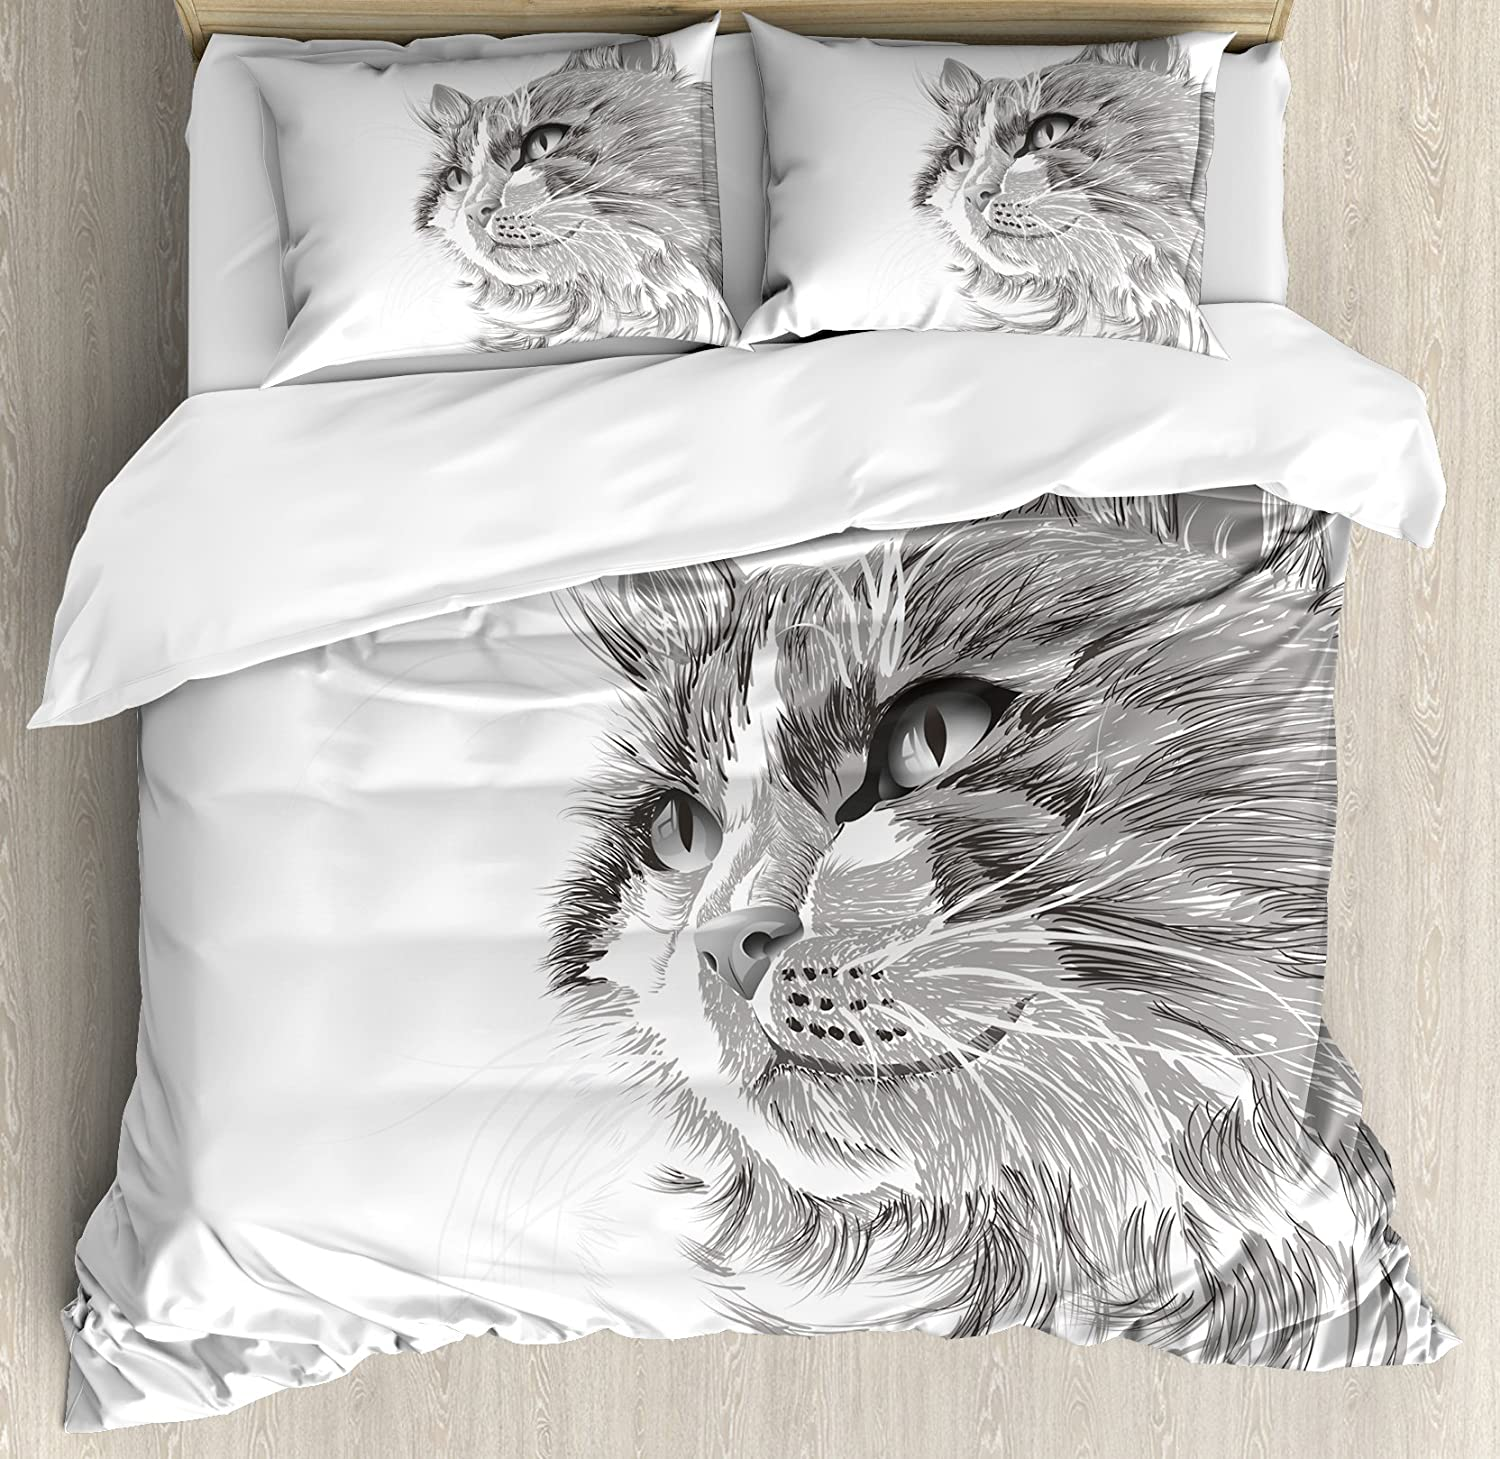 Ambesonne Animal Duvet Cover Set, Cat Head Portrait Furry Head Kitten Domestic Meow Pet Drawing Illustration, Decorative 3 Piece Bedding Set with 2 Pillow Shams, Queen Size, Grey White